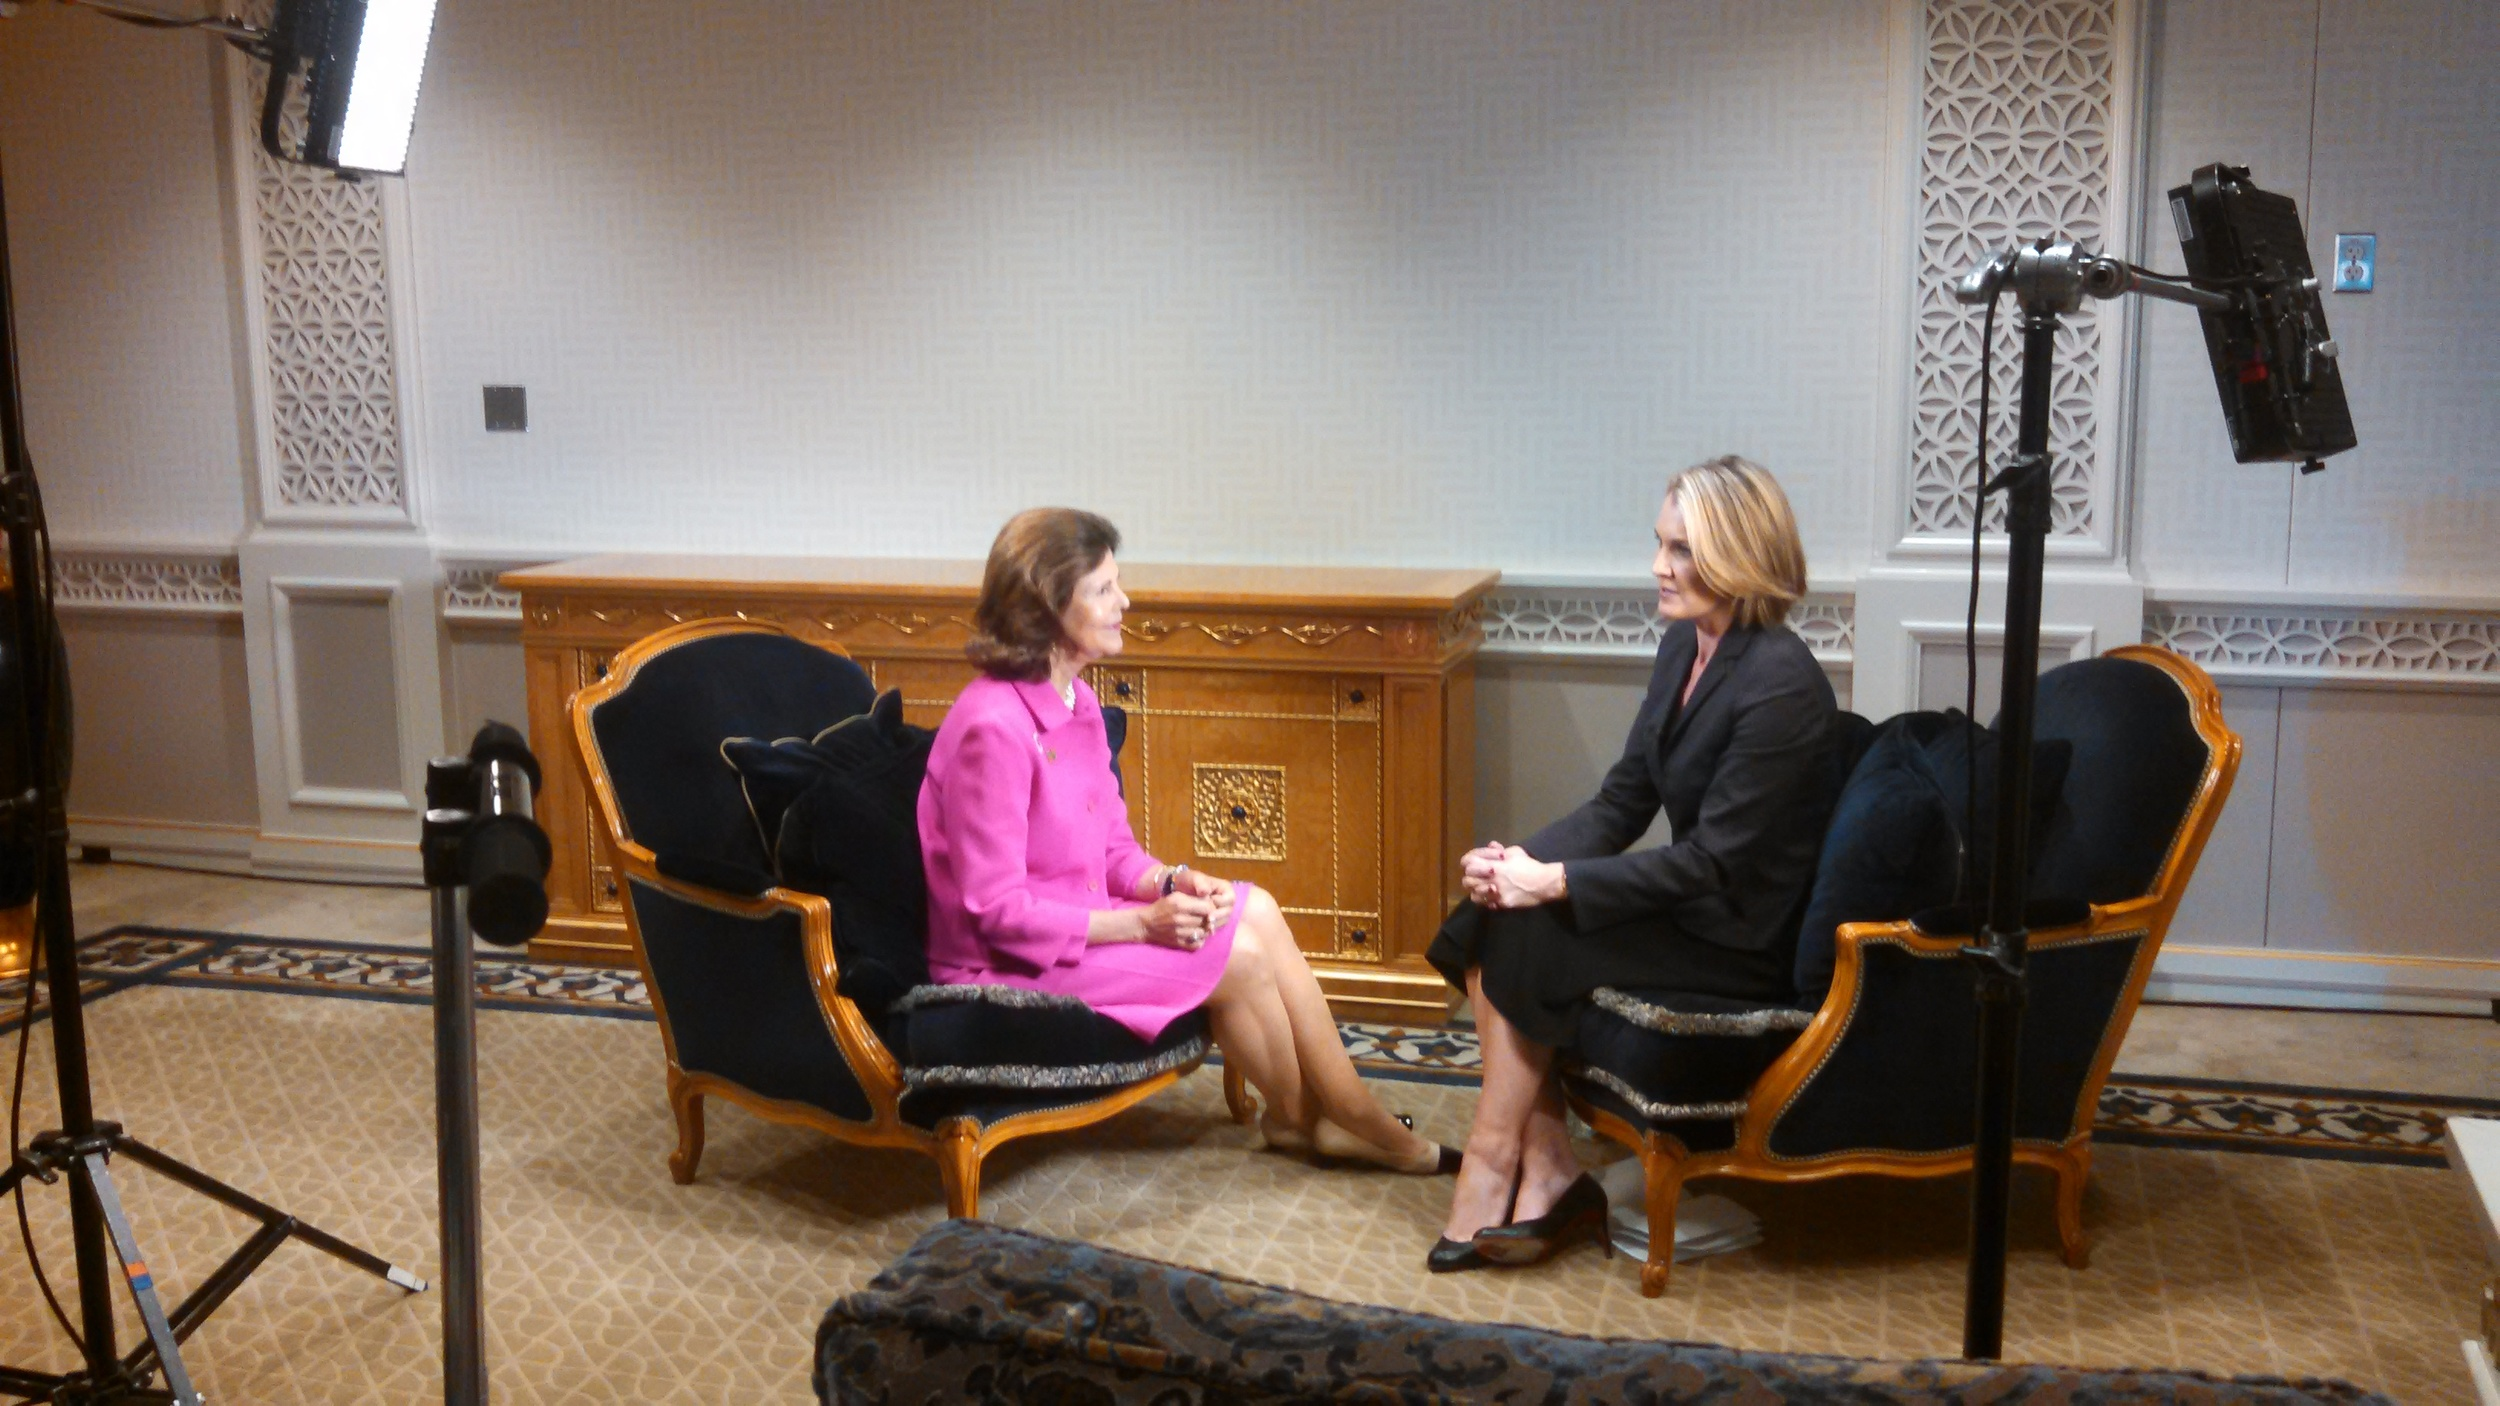 HM Queen Silvia's interview with CNN International's Robyn Curnow